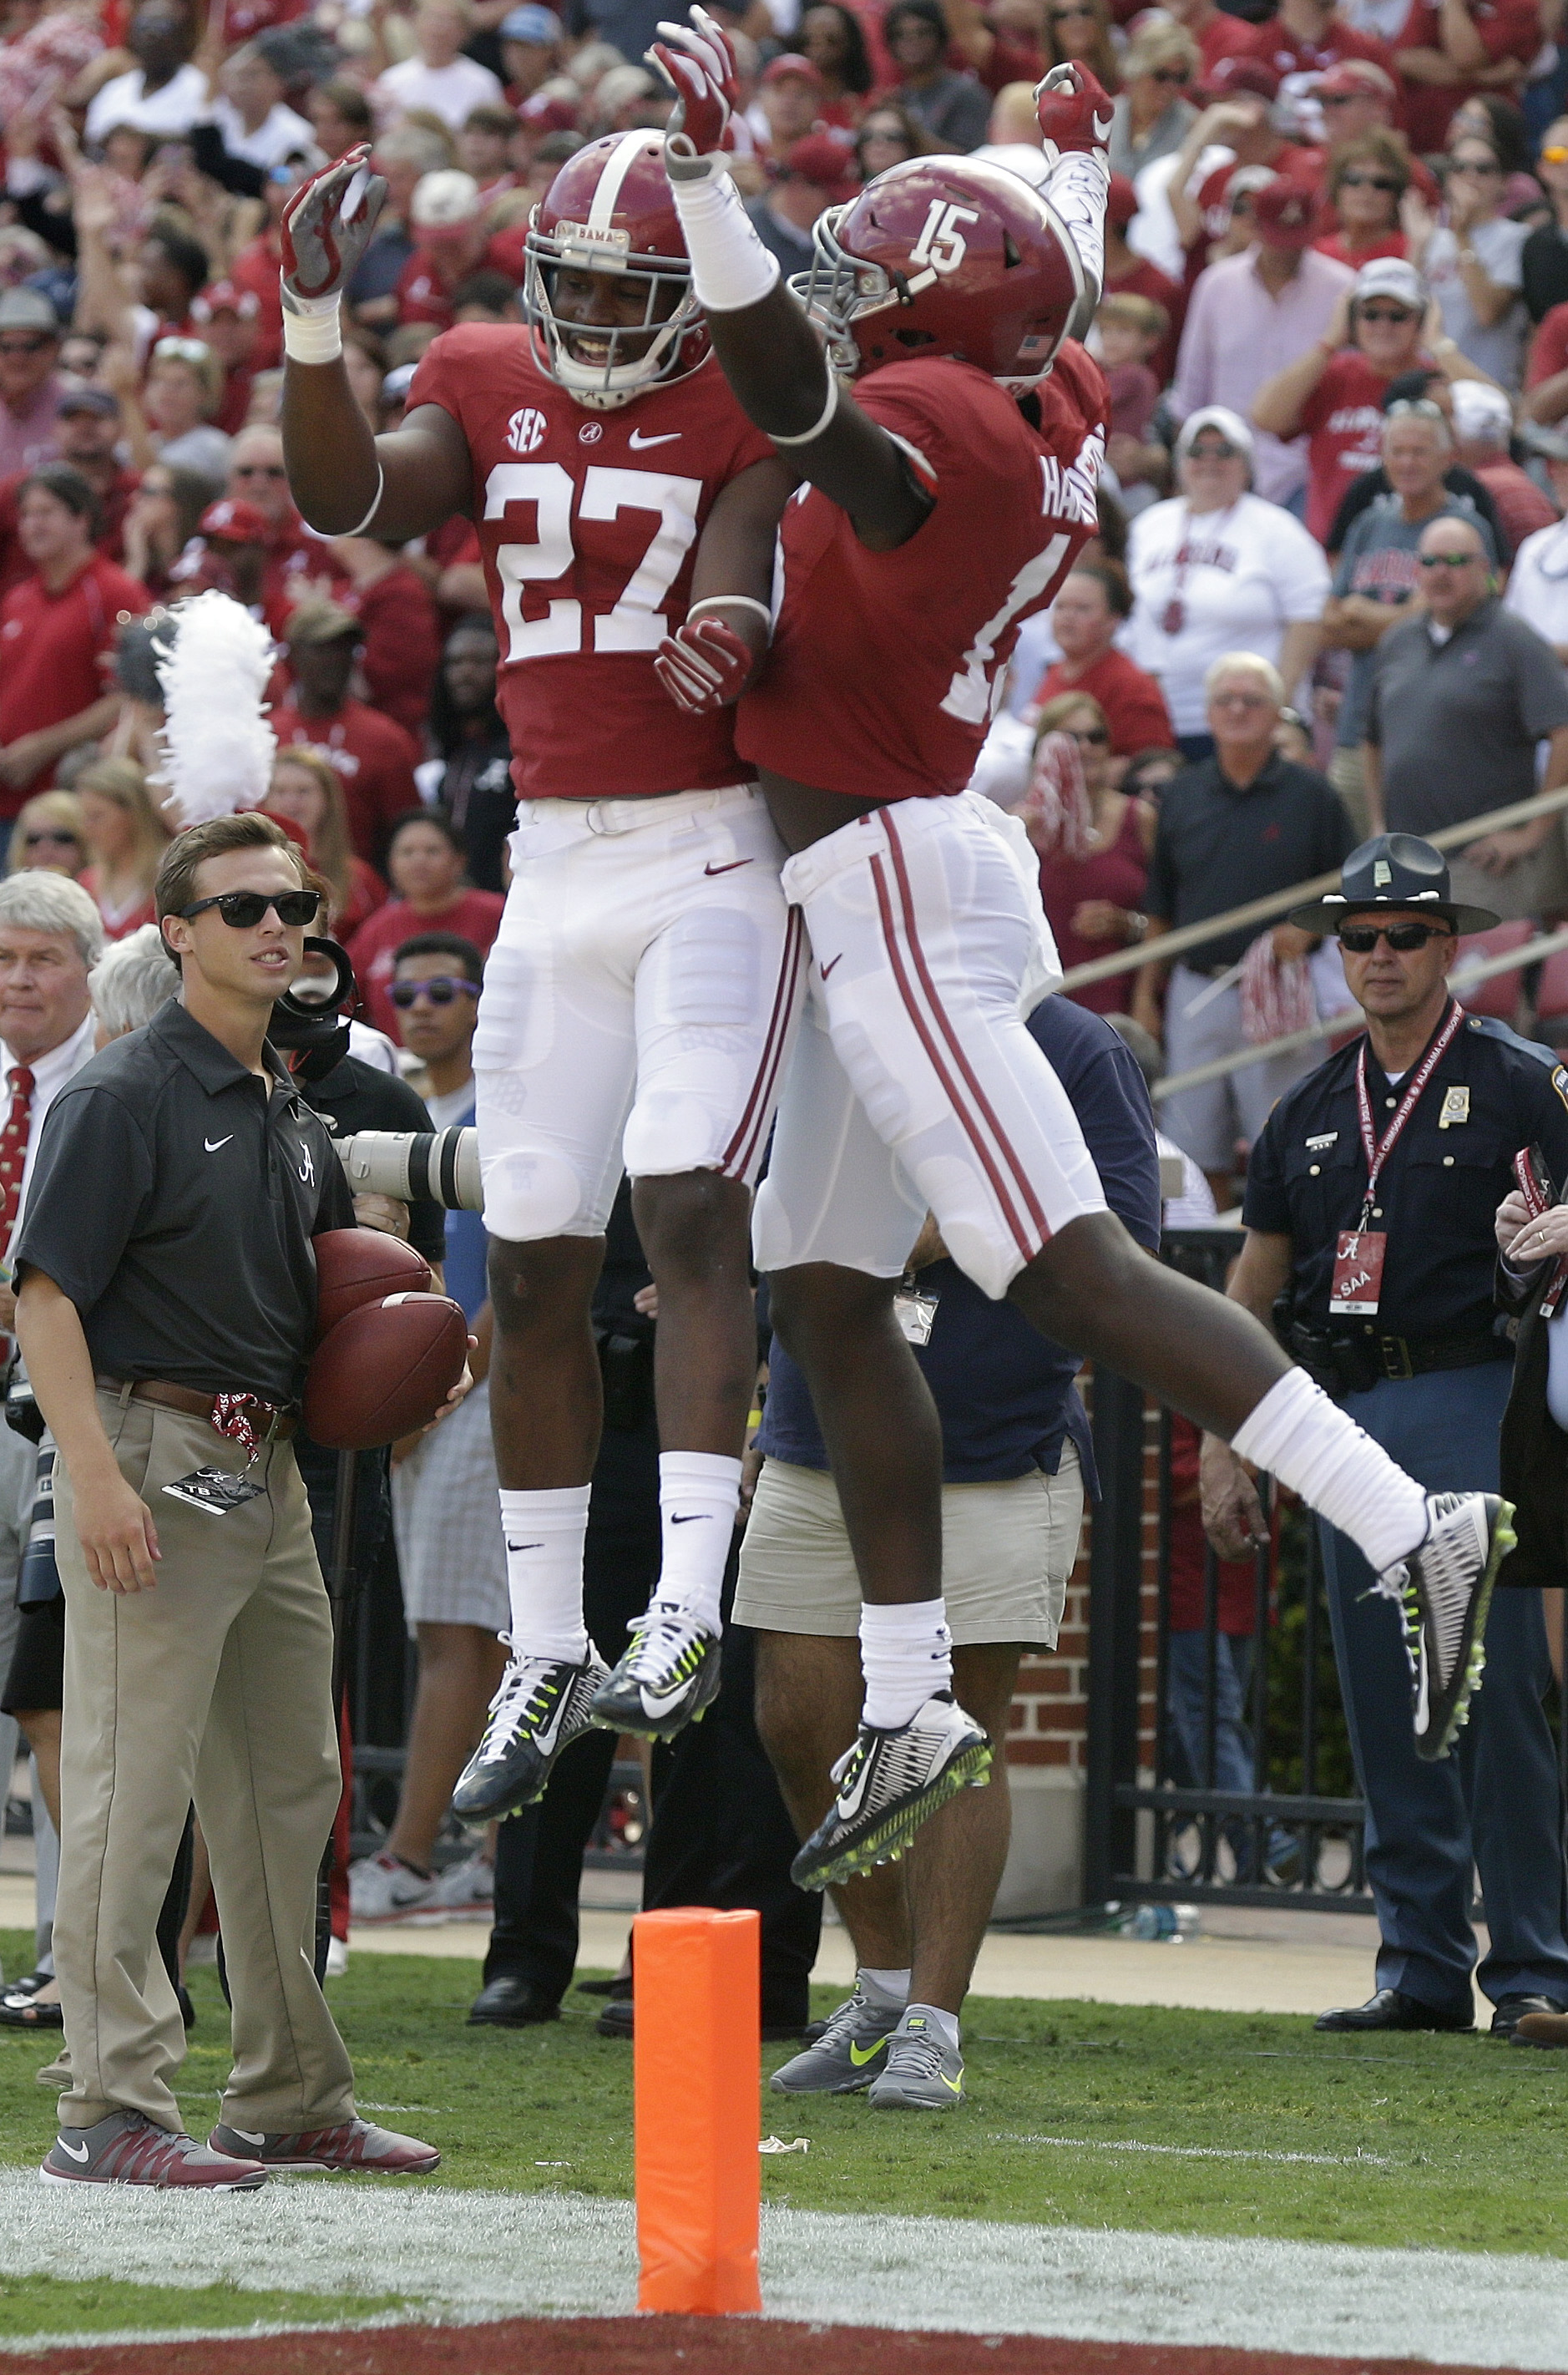 Alabama defensive back Ronnie Harrison (15) and defensive back Shawn Burgess-Becker (27) celebrate after Harrison blocked the punt against Middle Tennessee Trevor Owens  punter (43) in the first half of an NCAA college football game, Saturday, Sept. 12, 2